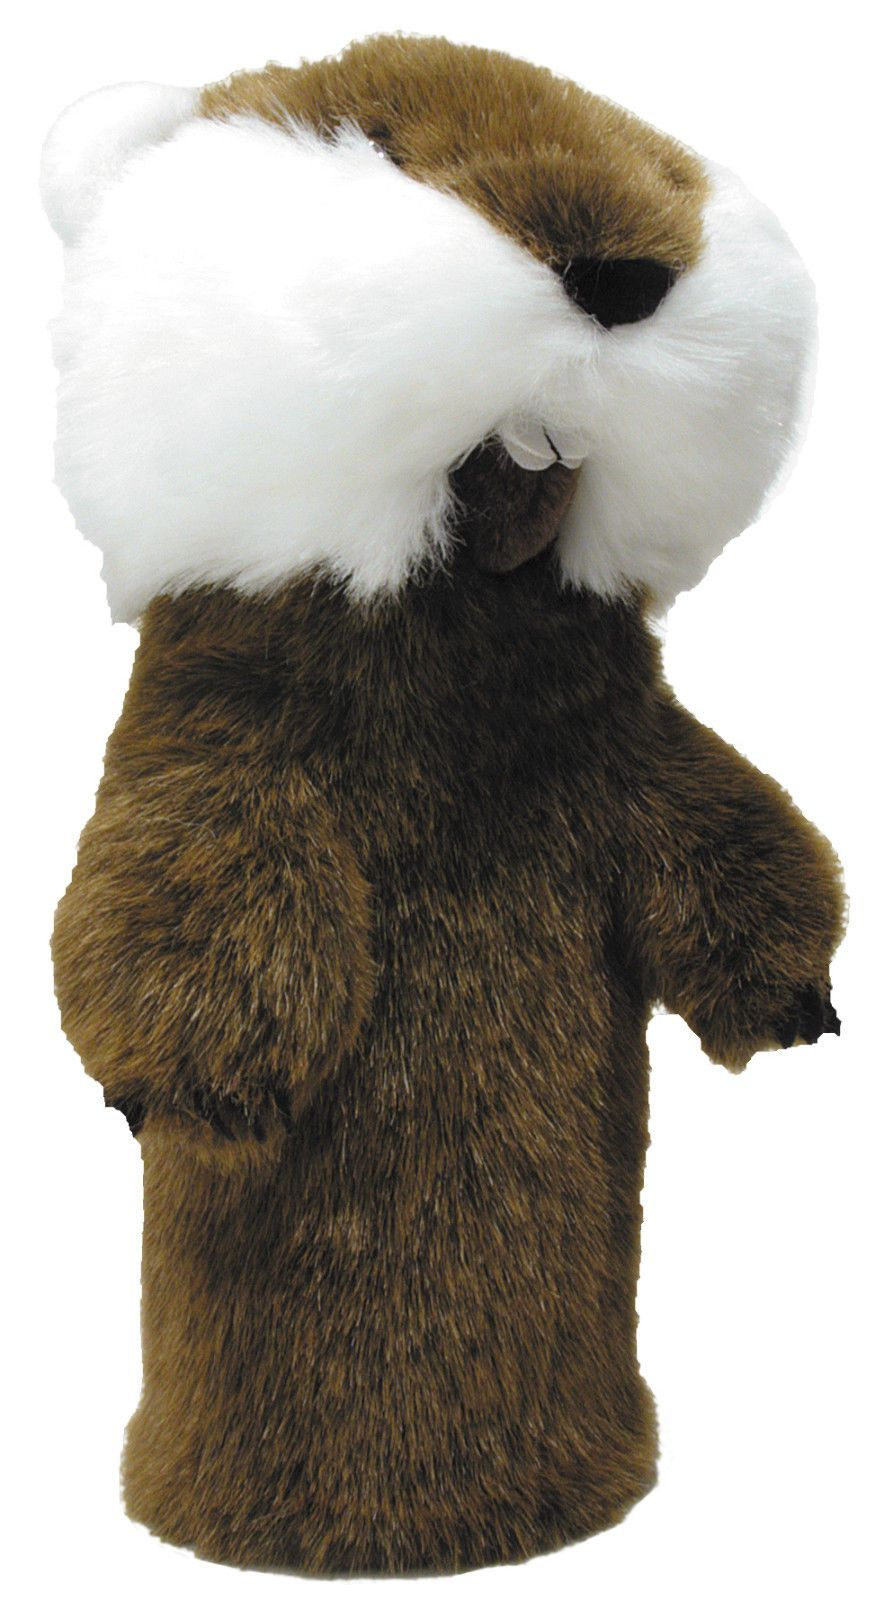 de02f49691e Club Head Covers 18930  Caddyshack Gopher Golf Club Headcover For 460Cc  Driver